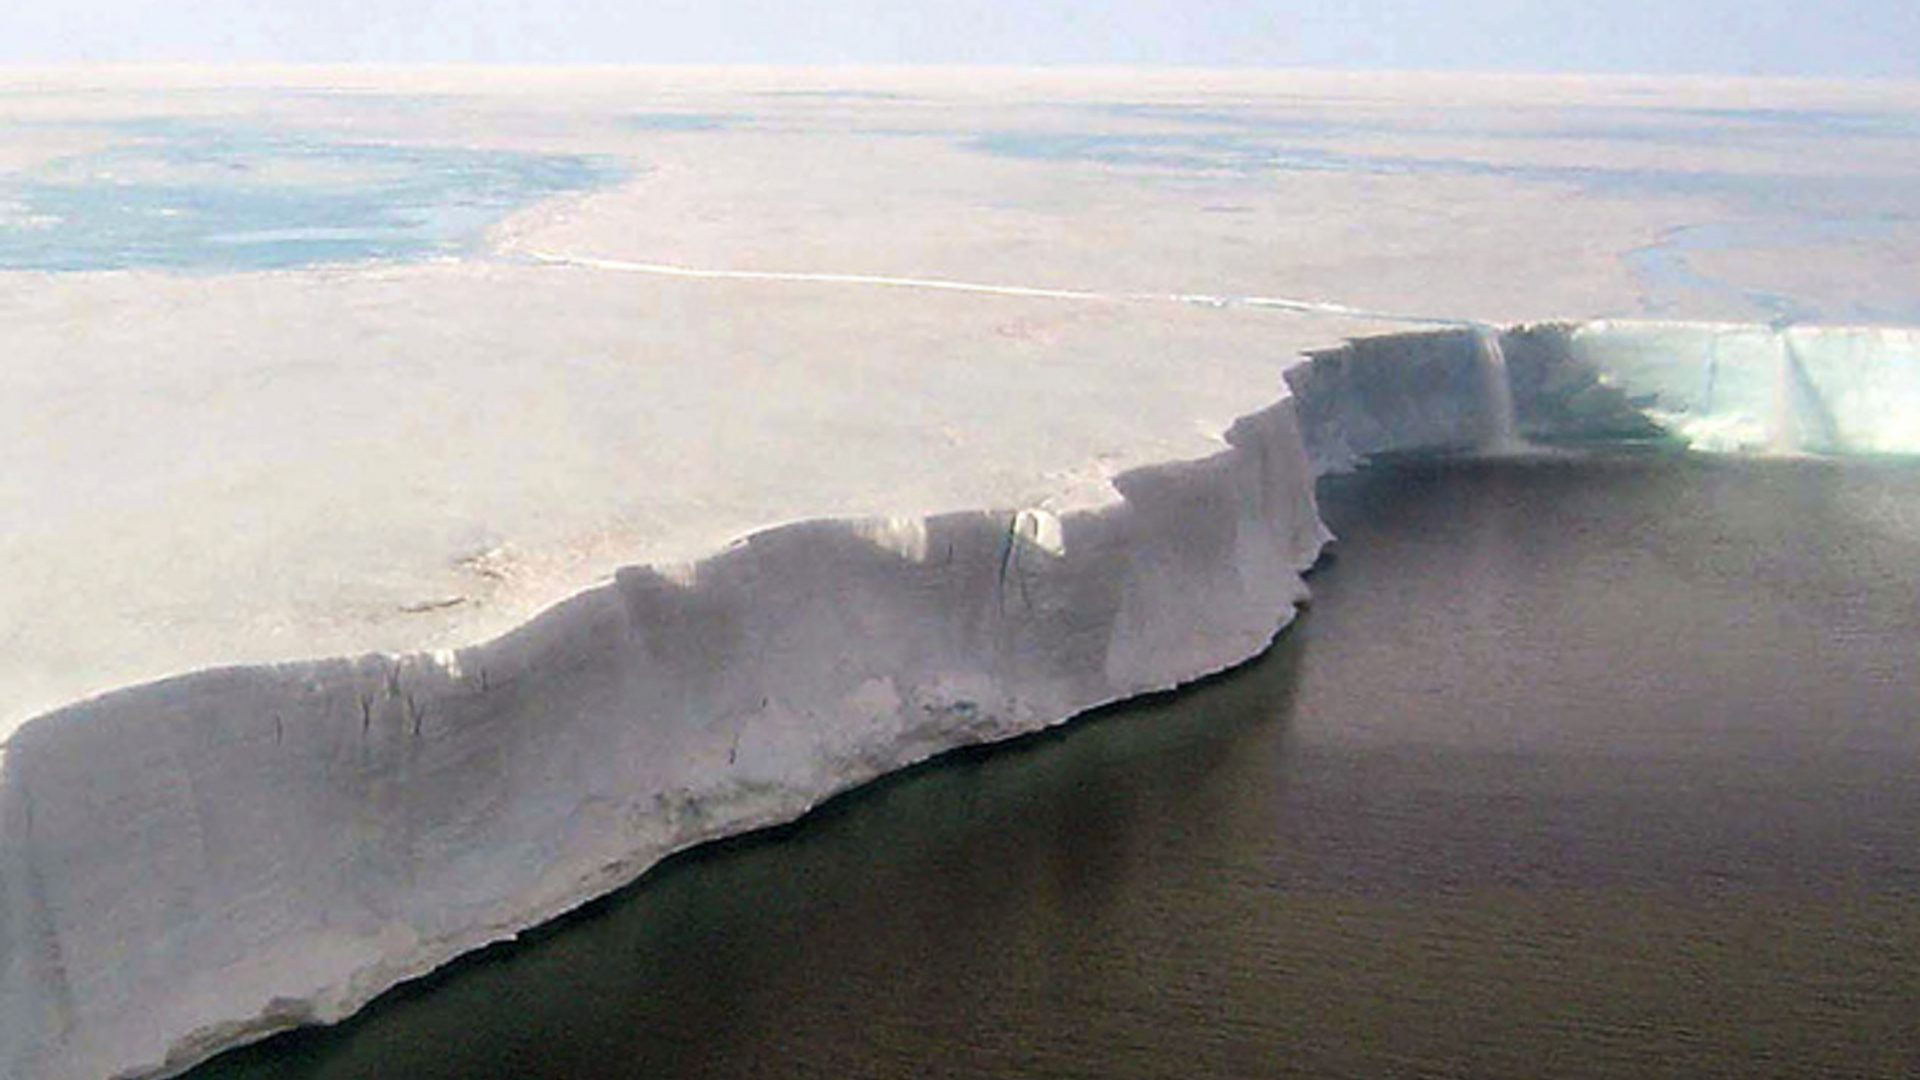 A stretch of the Larsen shelf which is poised to break completely apart, sending a huge iceberg into the ocean.